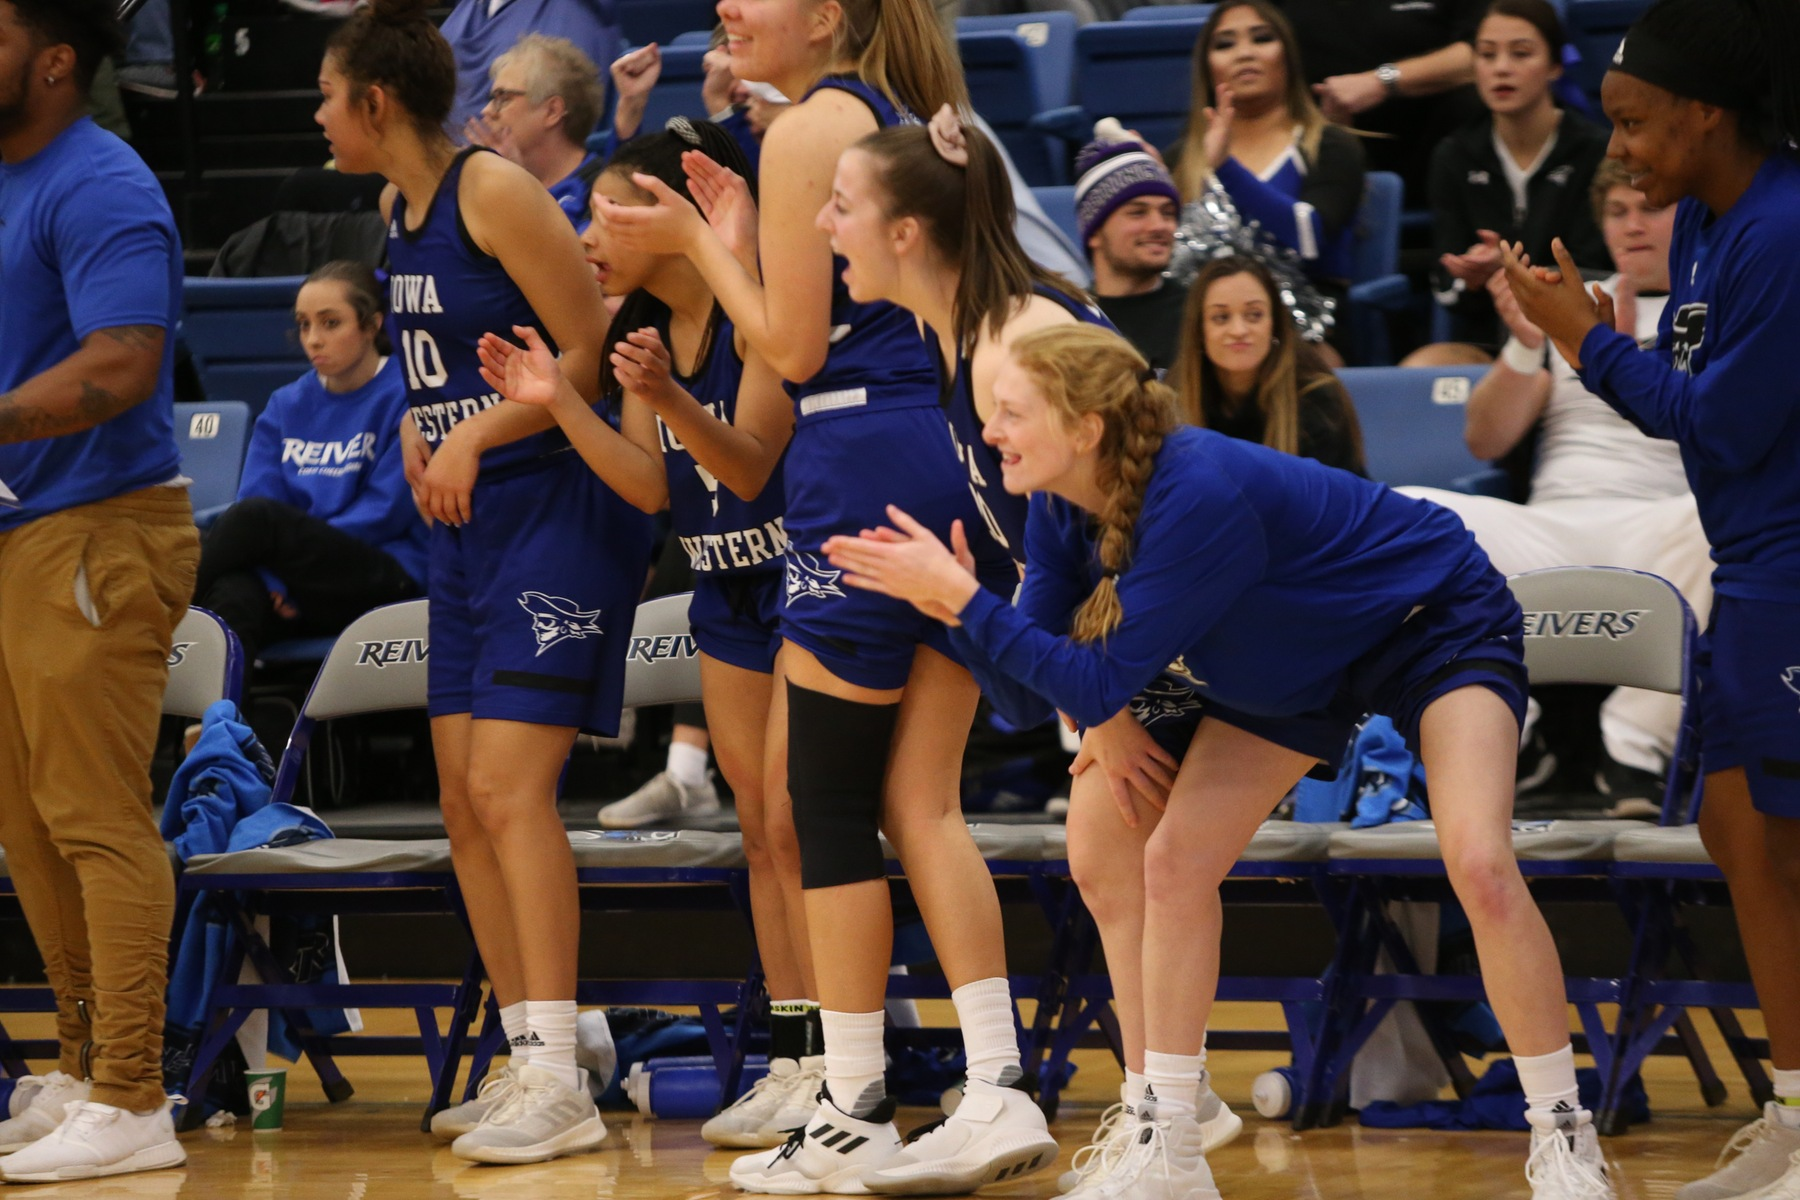 Reivers defend home court in convincing win